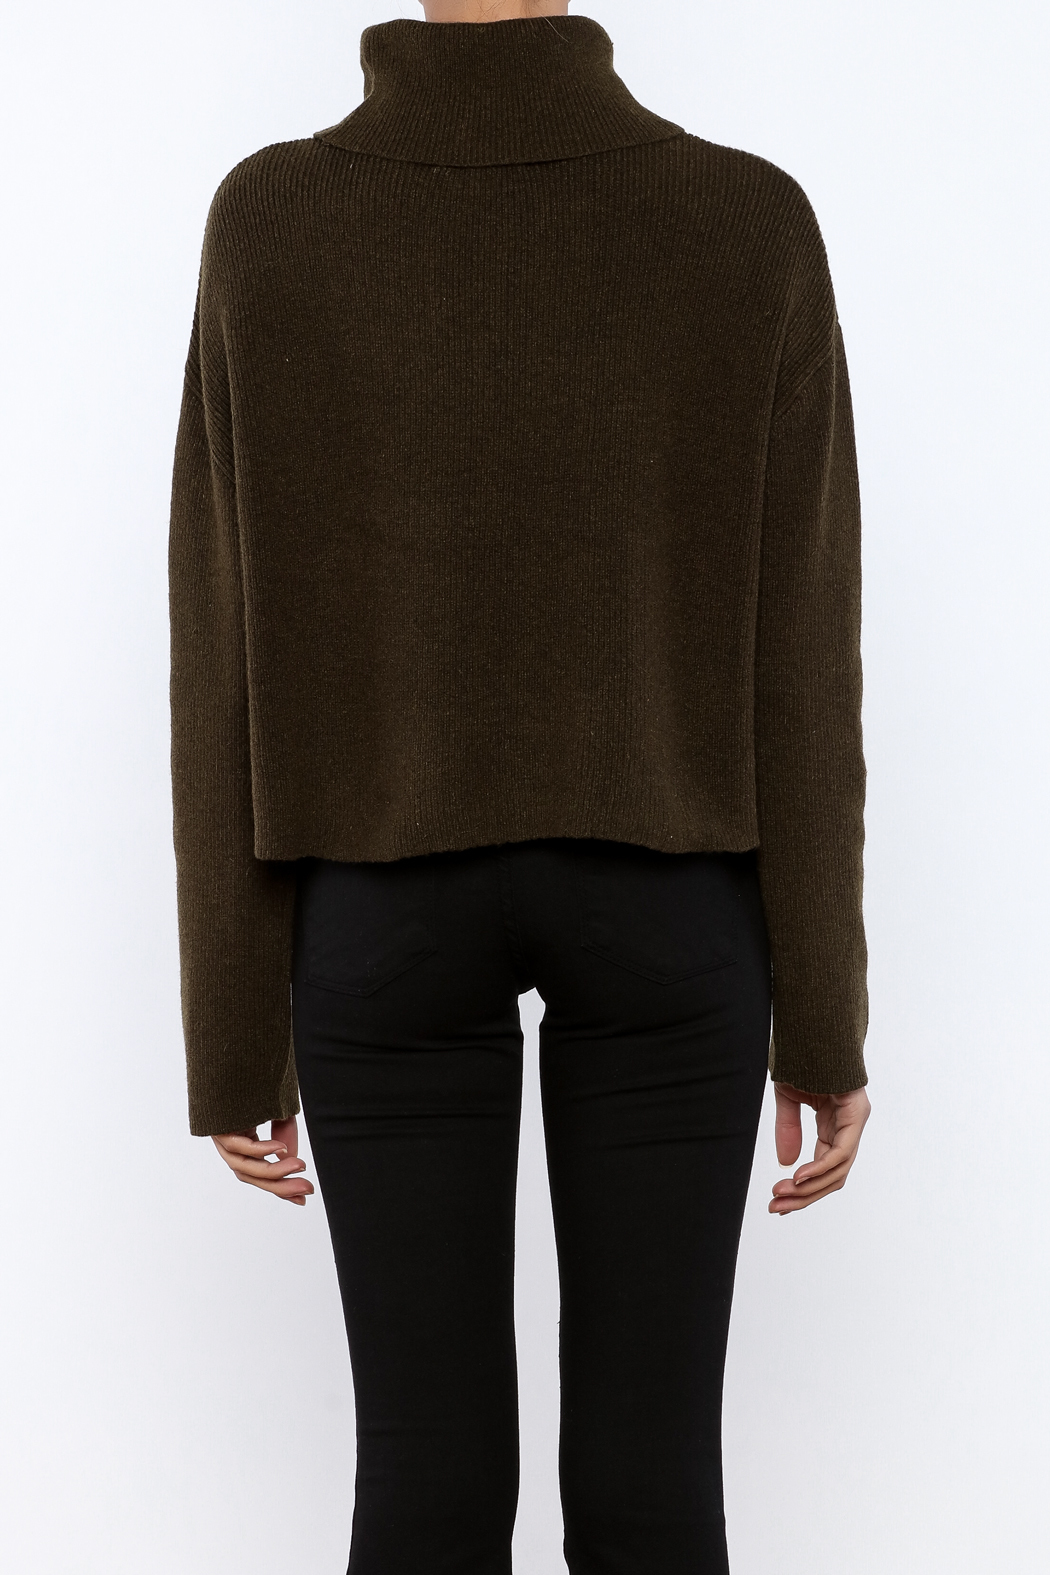 J.O.A. Turtleneck Crop Sweater - Back Cropped Image